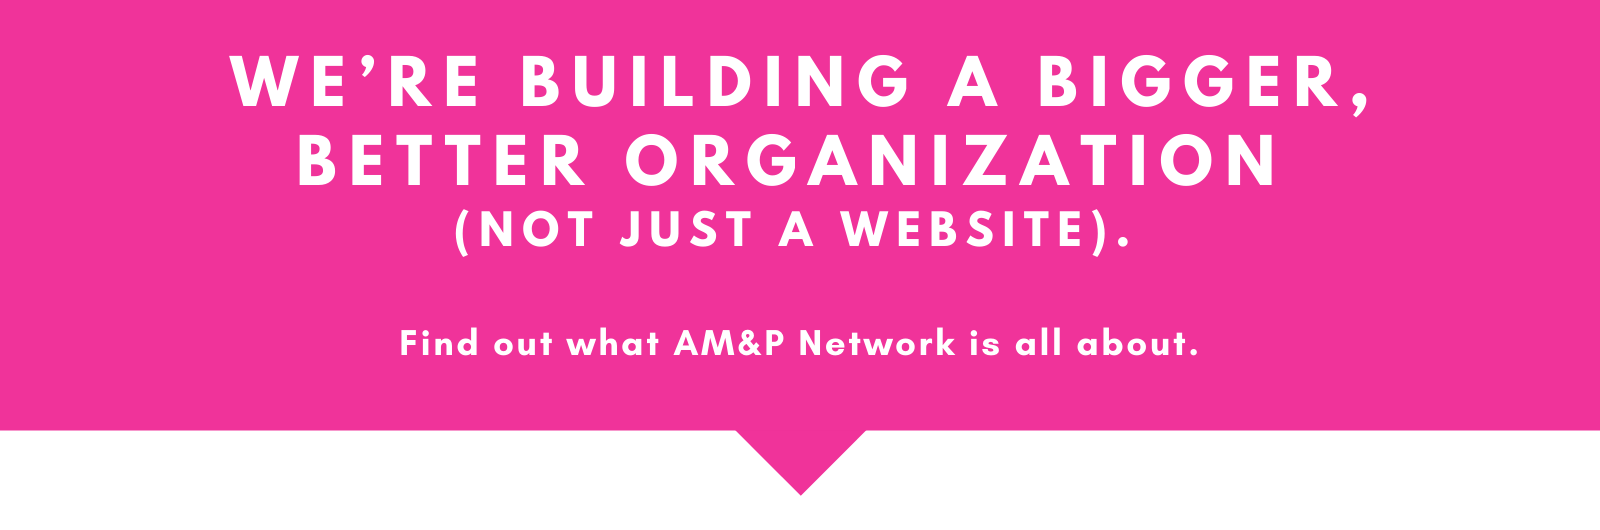 we're building a new AM&P Network